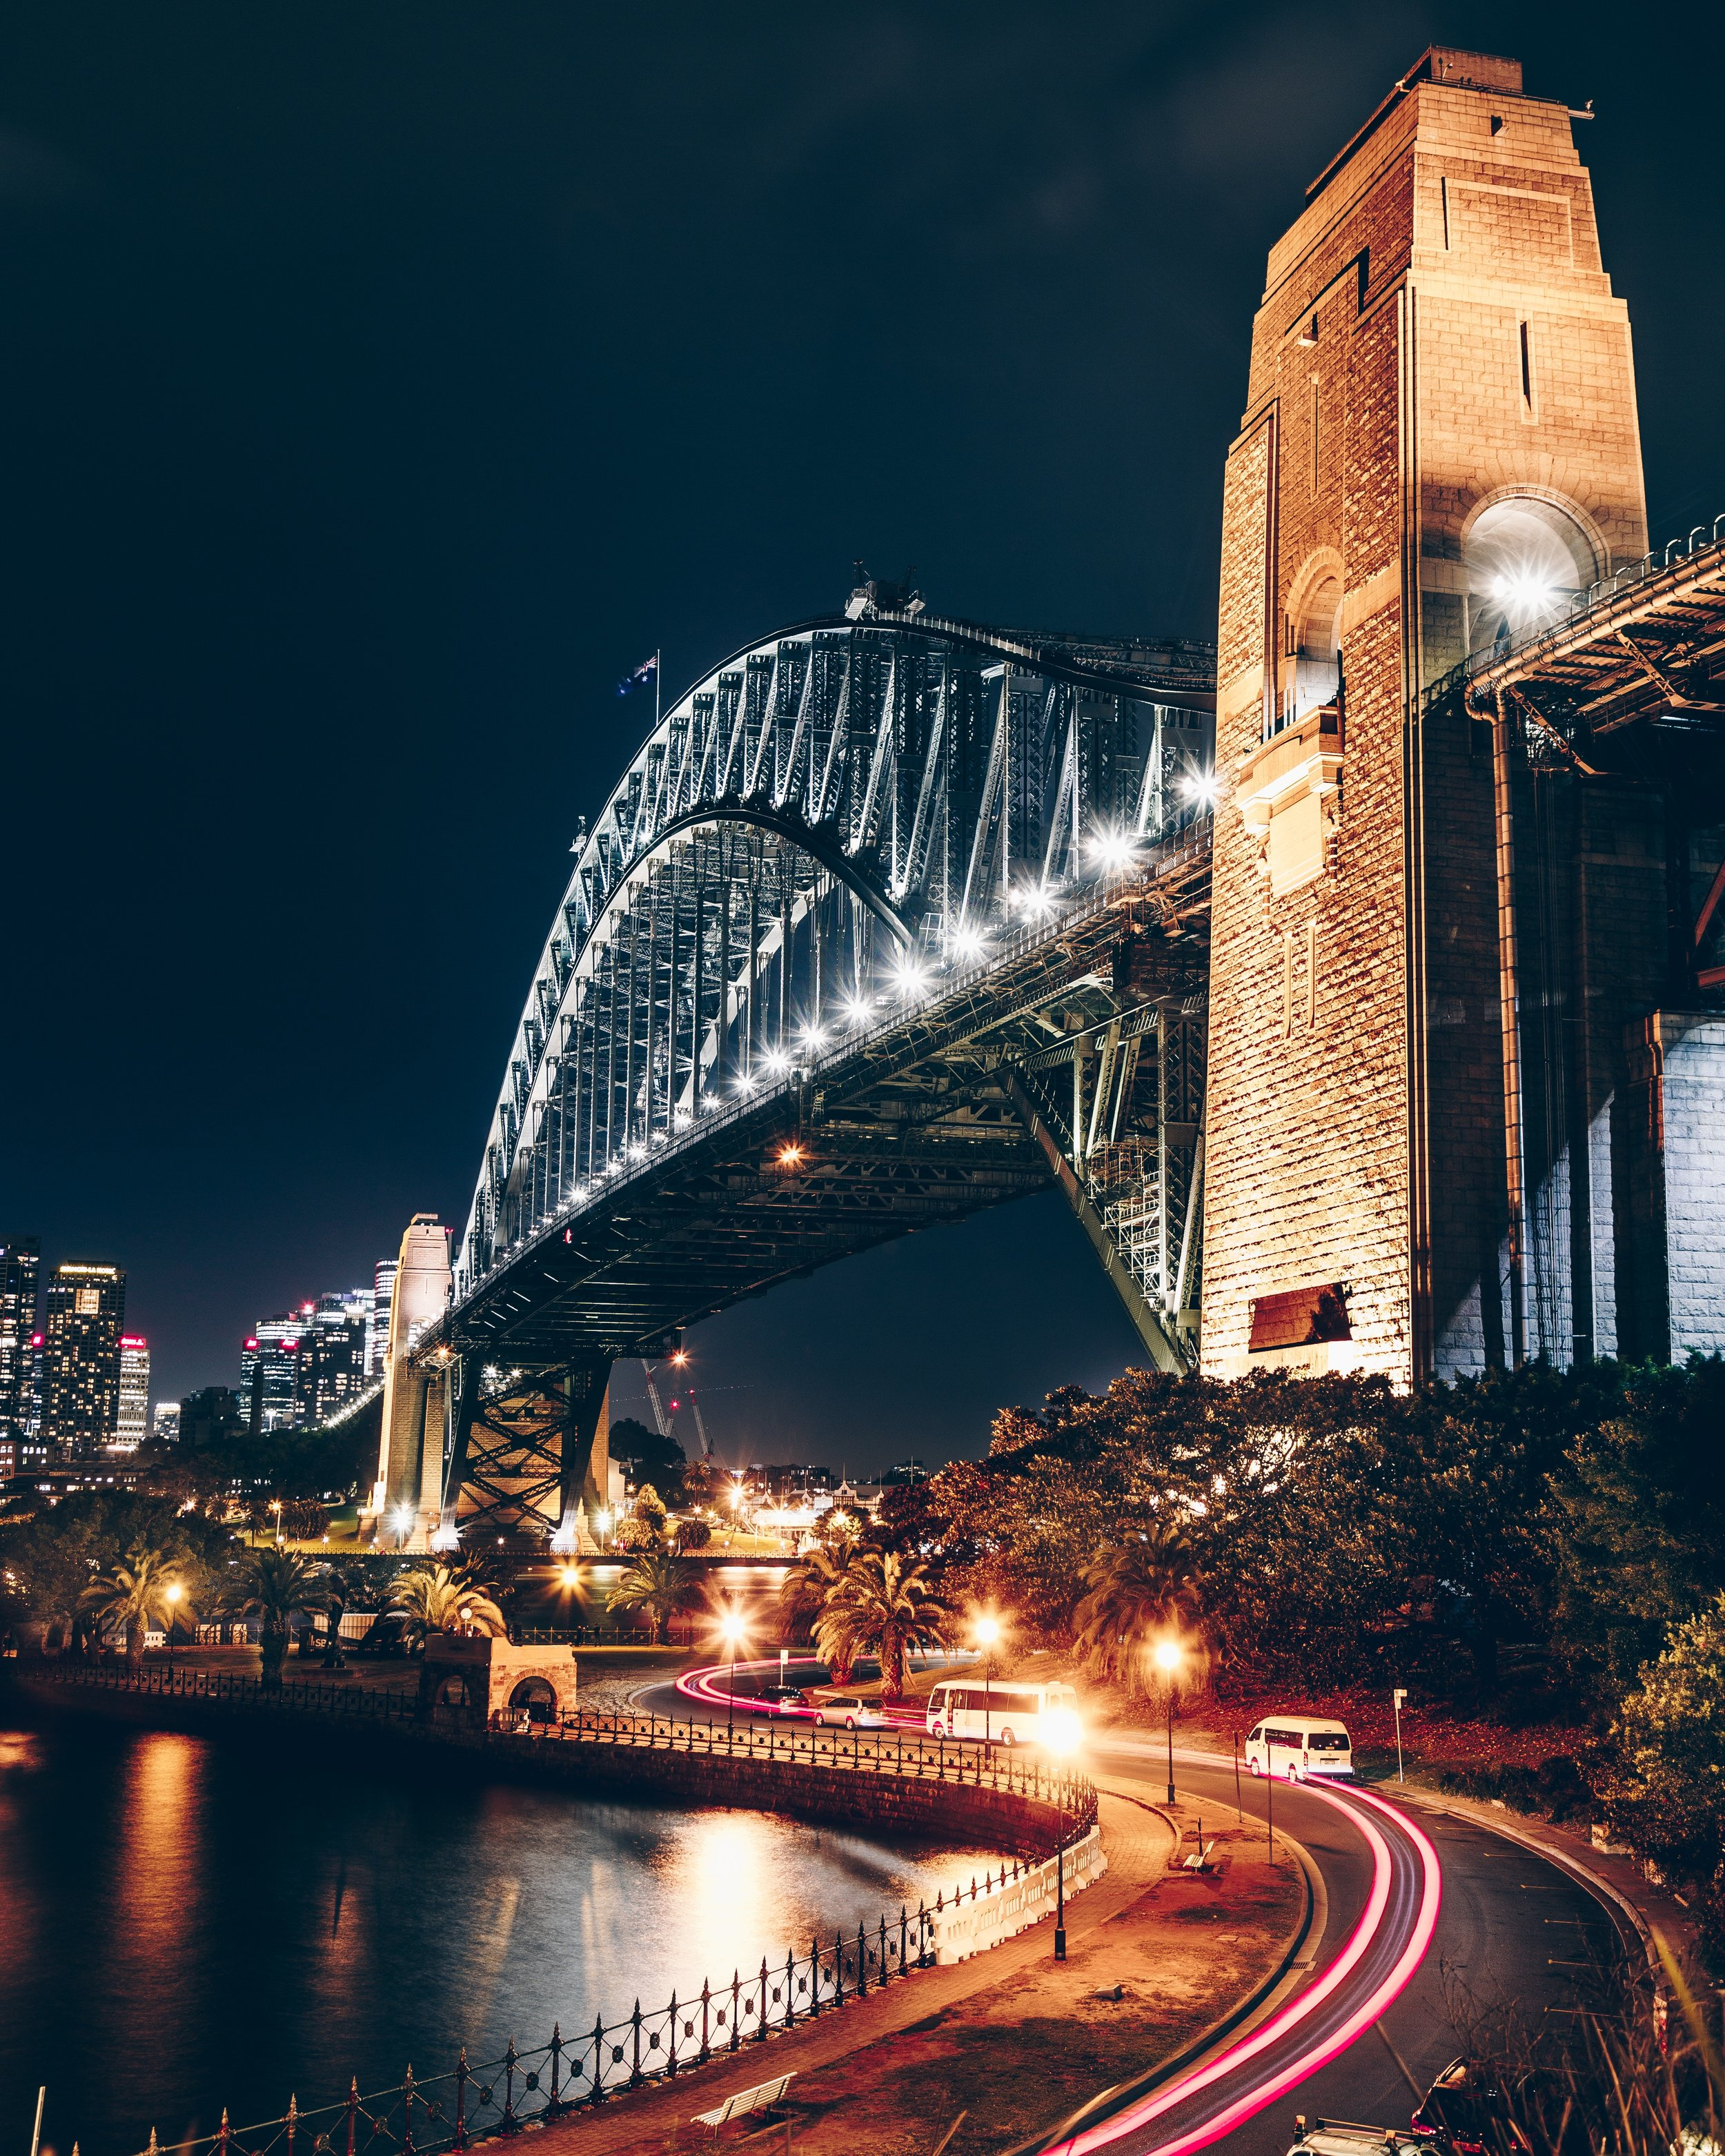 NSW Roads and Maritime Services (RMS) used a grant to fund the replacement of the Sydney Harbour Bridge's lighting with LEDs.